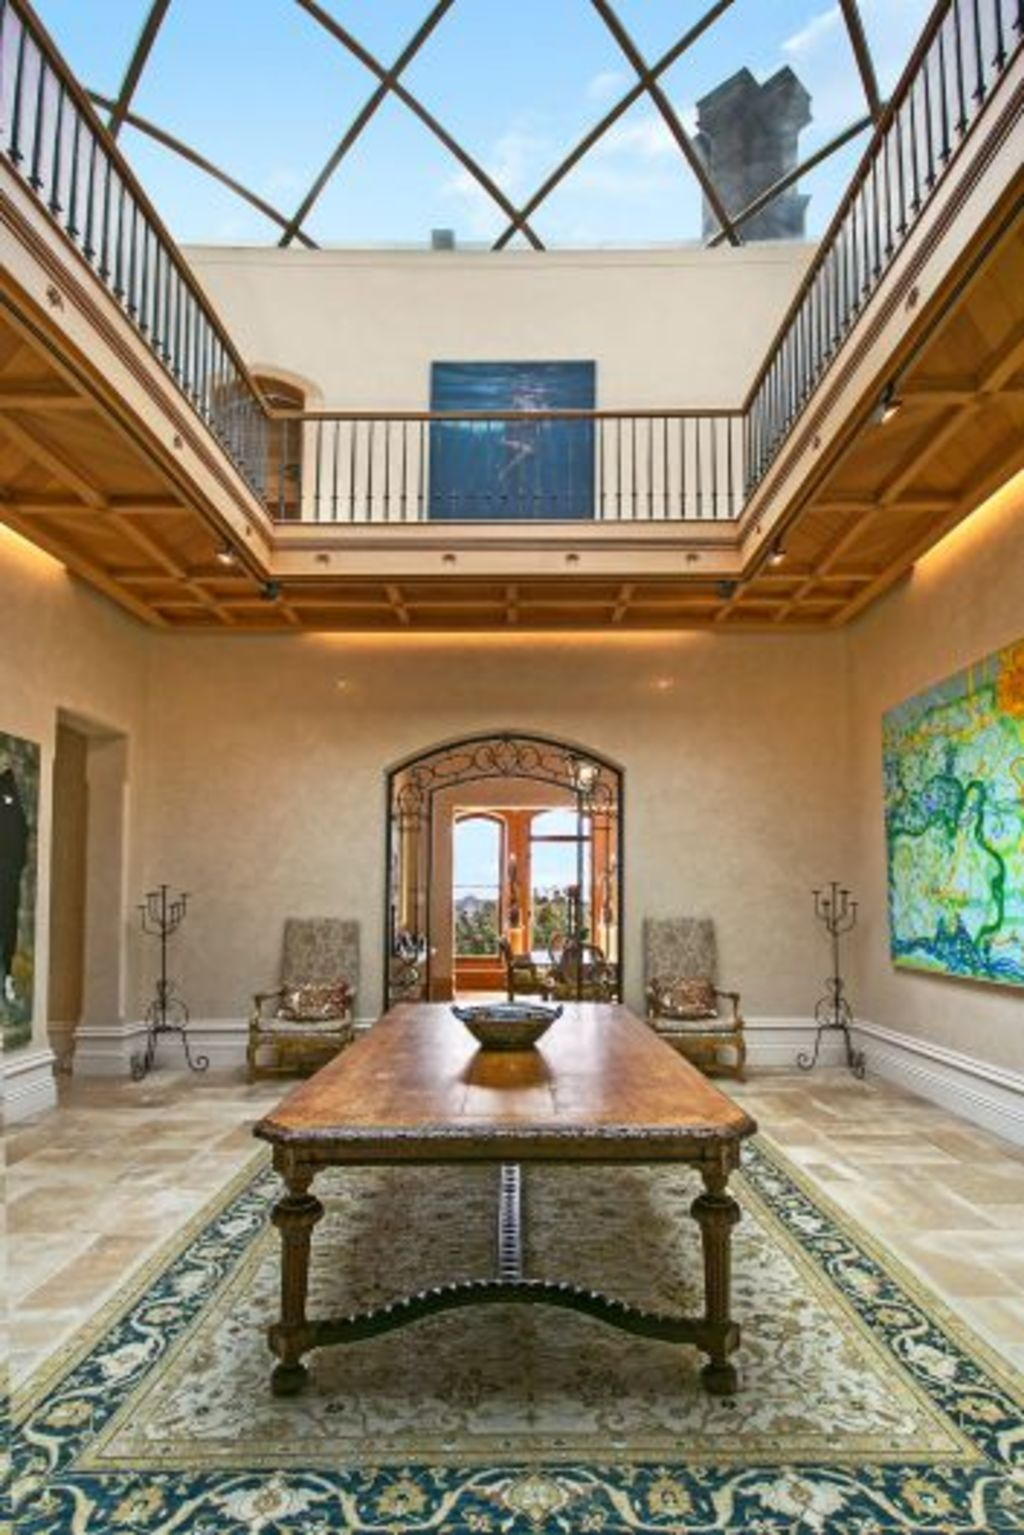 The sandstone entry hall was originally a courtyard. Photo: Supplied